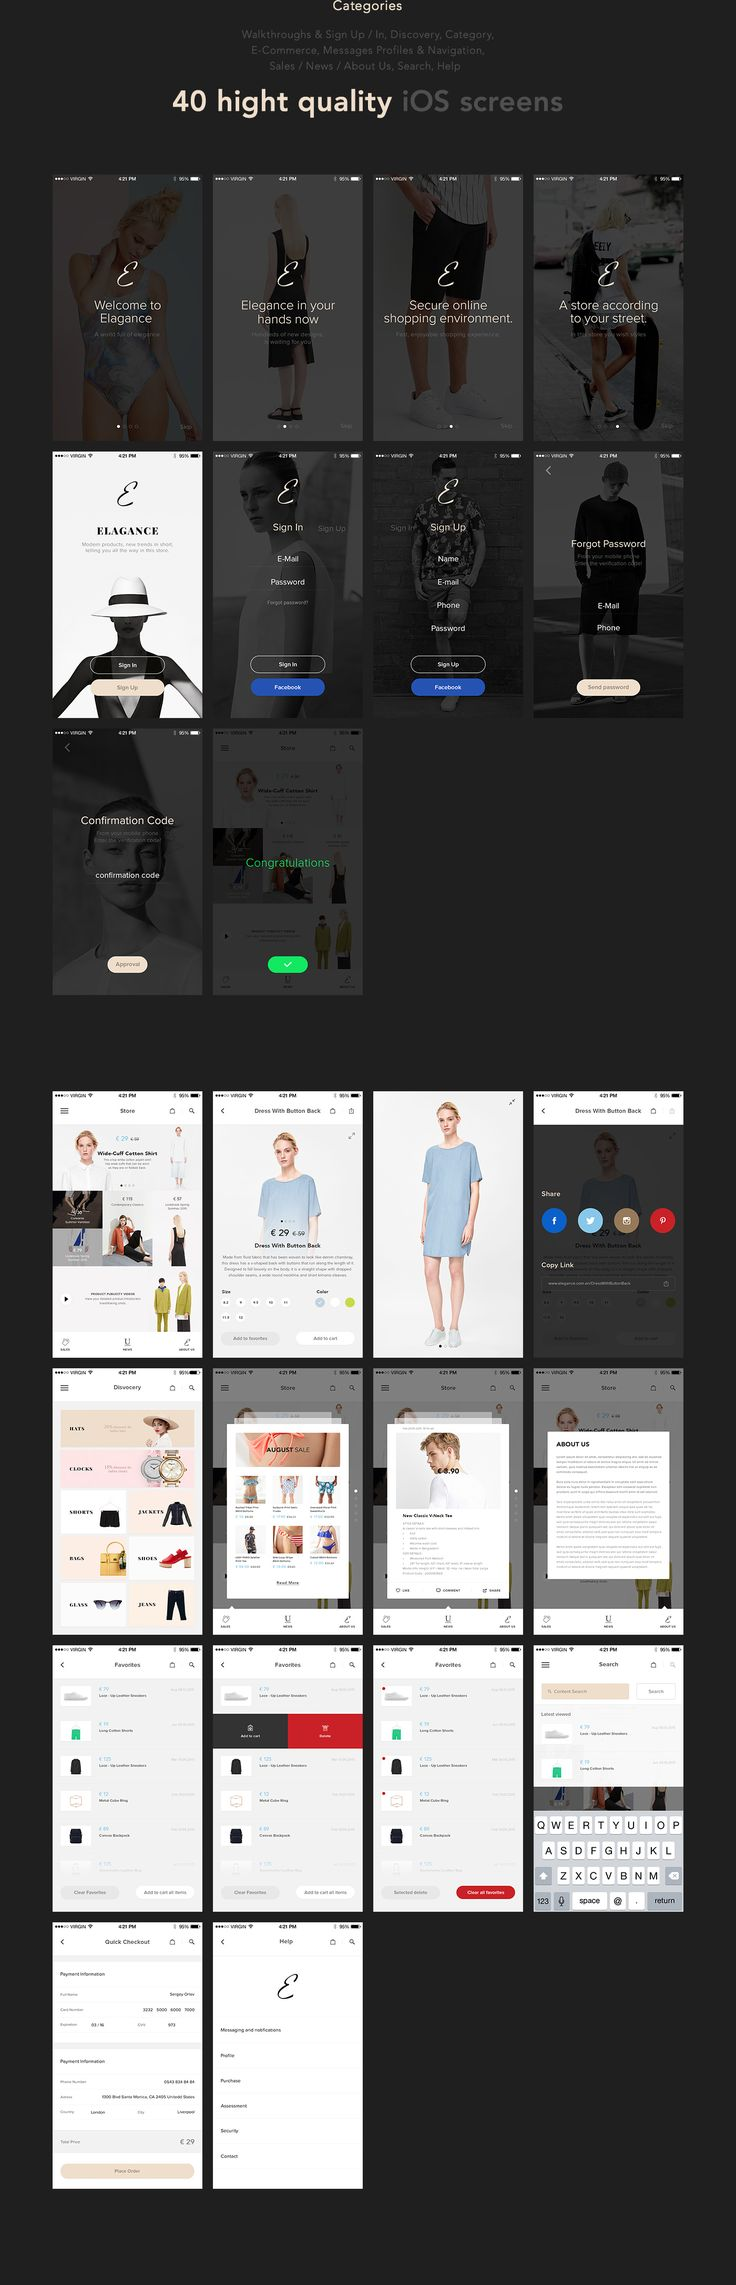 Elegance iOS UI Kit on Behance